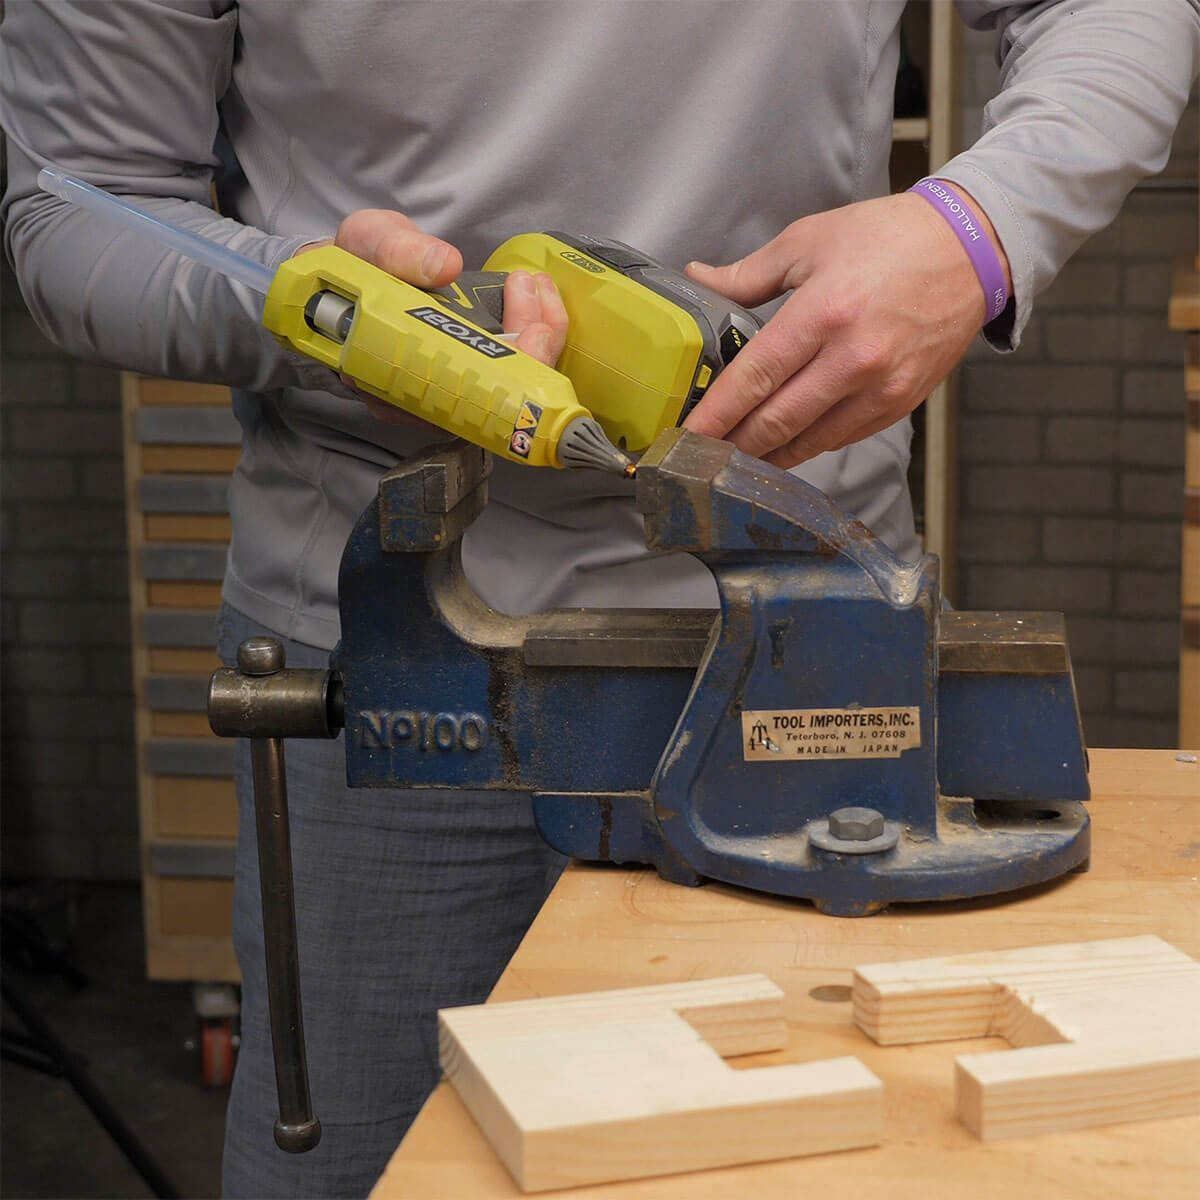 adding hot glue to hold pads on mechanics vise